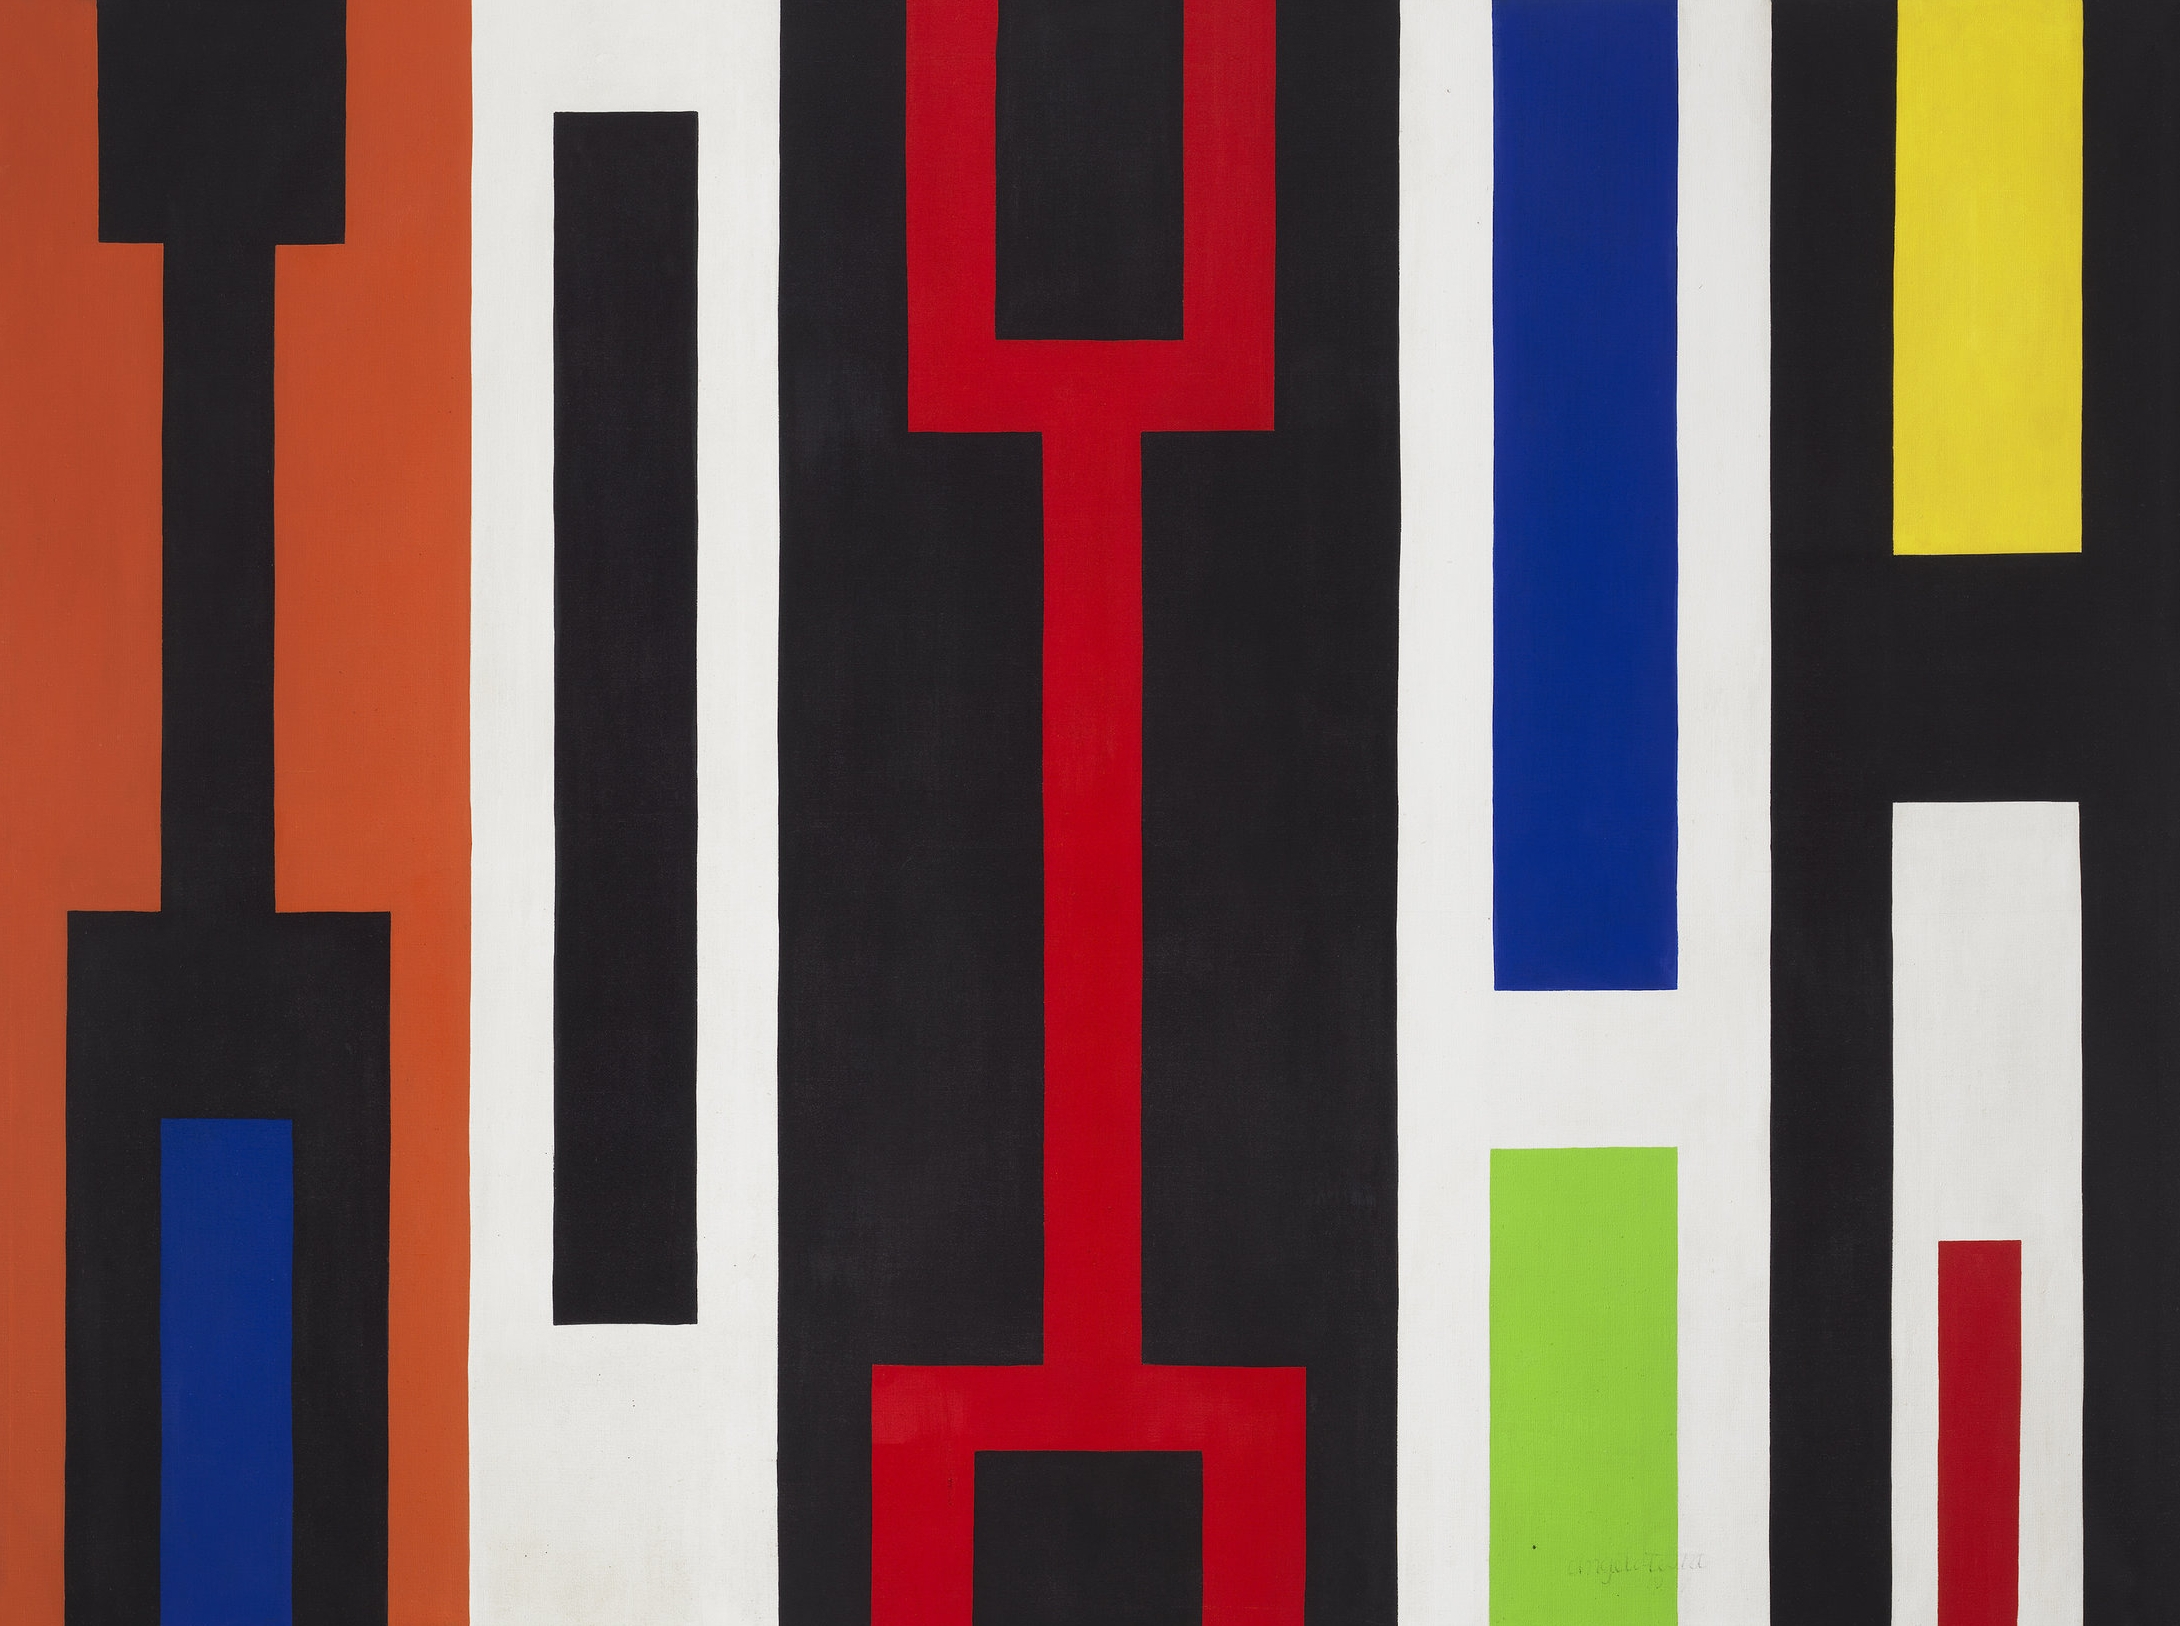 Angelo Testa ,  #267 Geometric Abstraction , 1967, oil on canvas, 80 3/8 x 107 5/8 inches